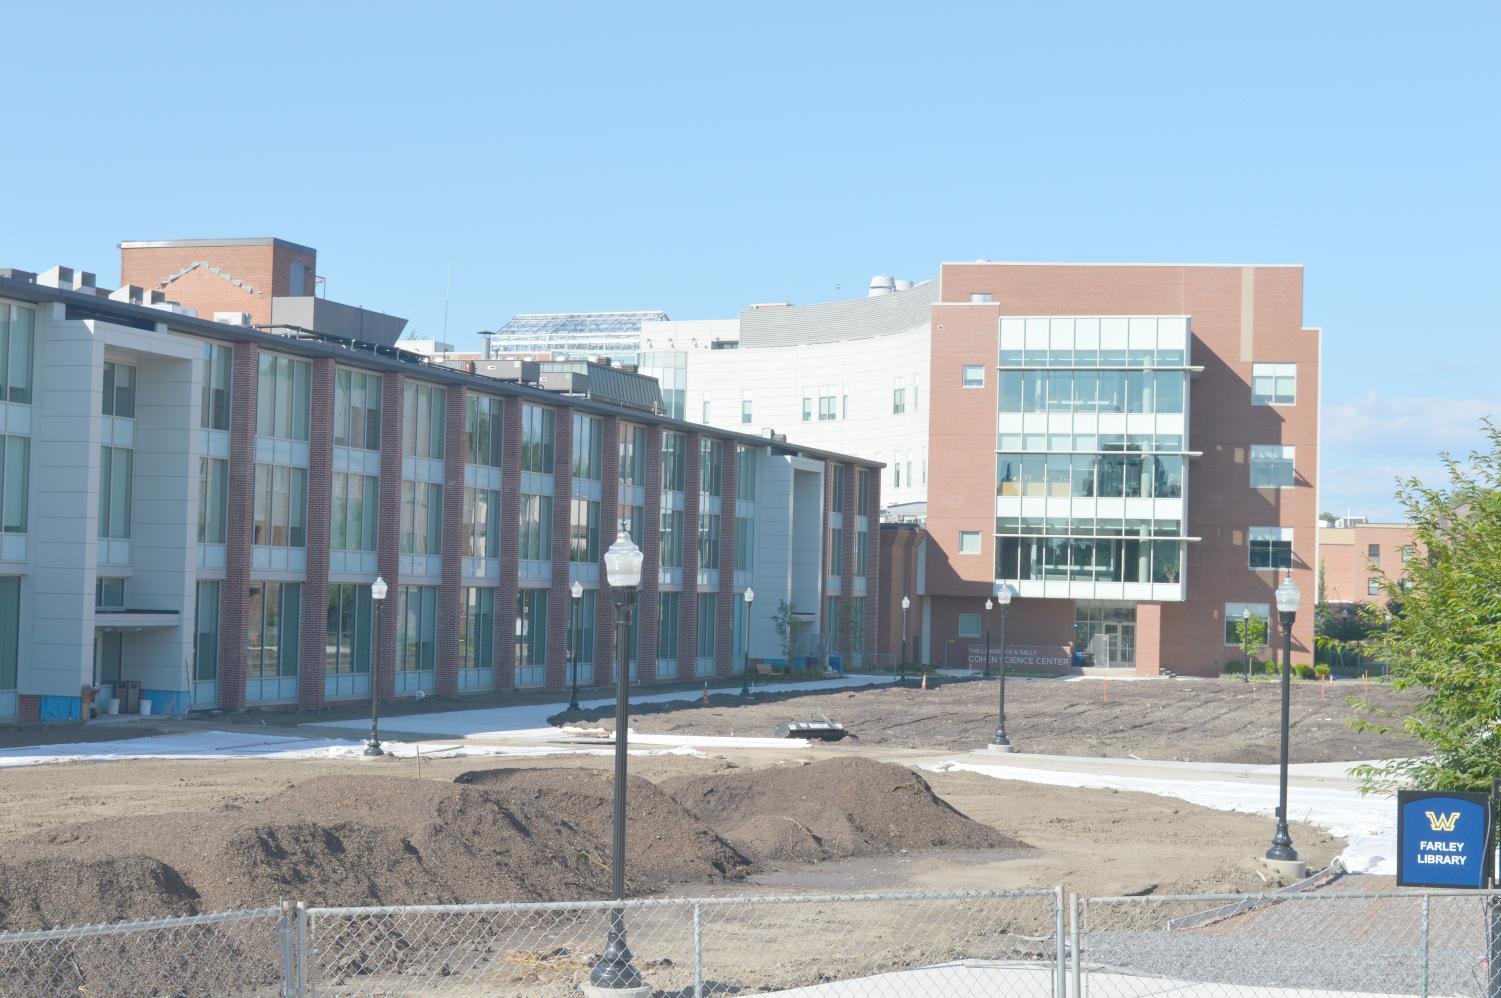 The site of the Fenner Quad during July showed dirt, rather than greenway.